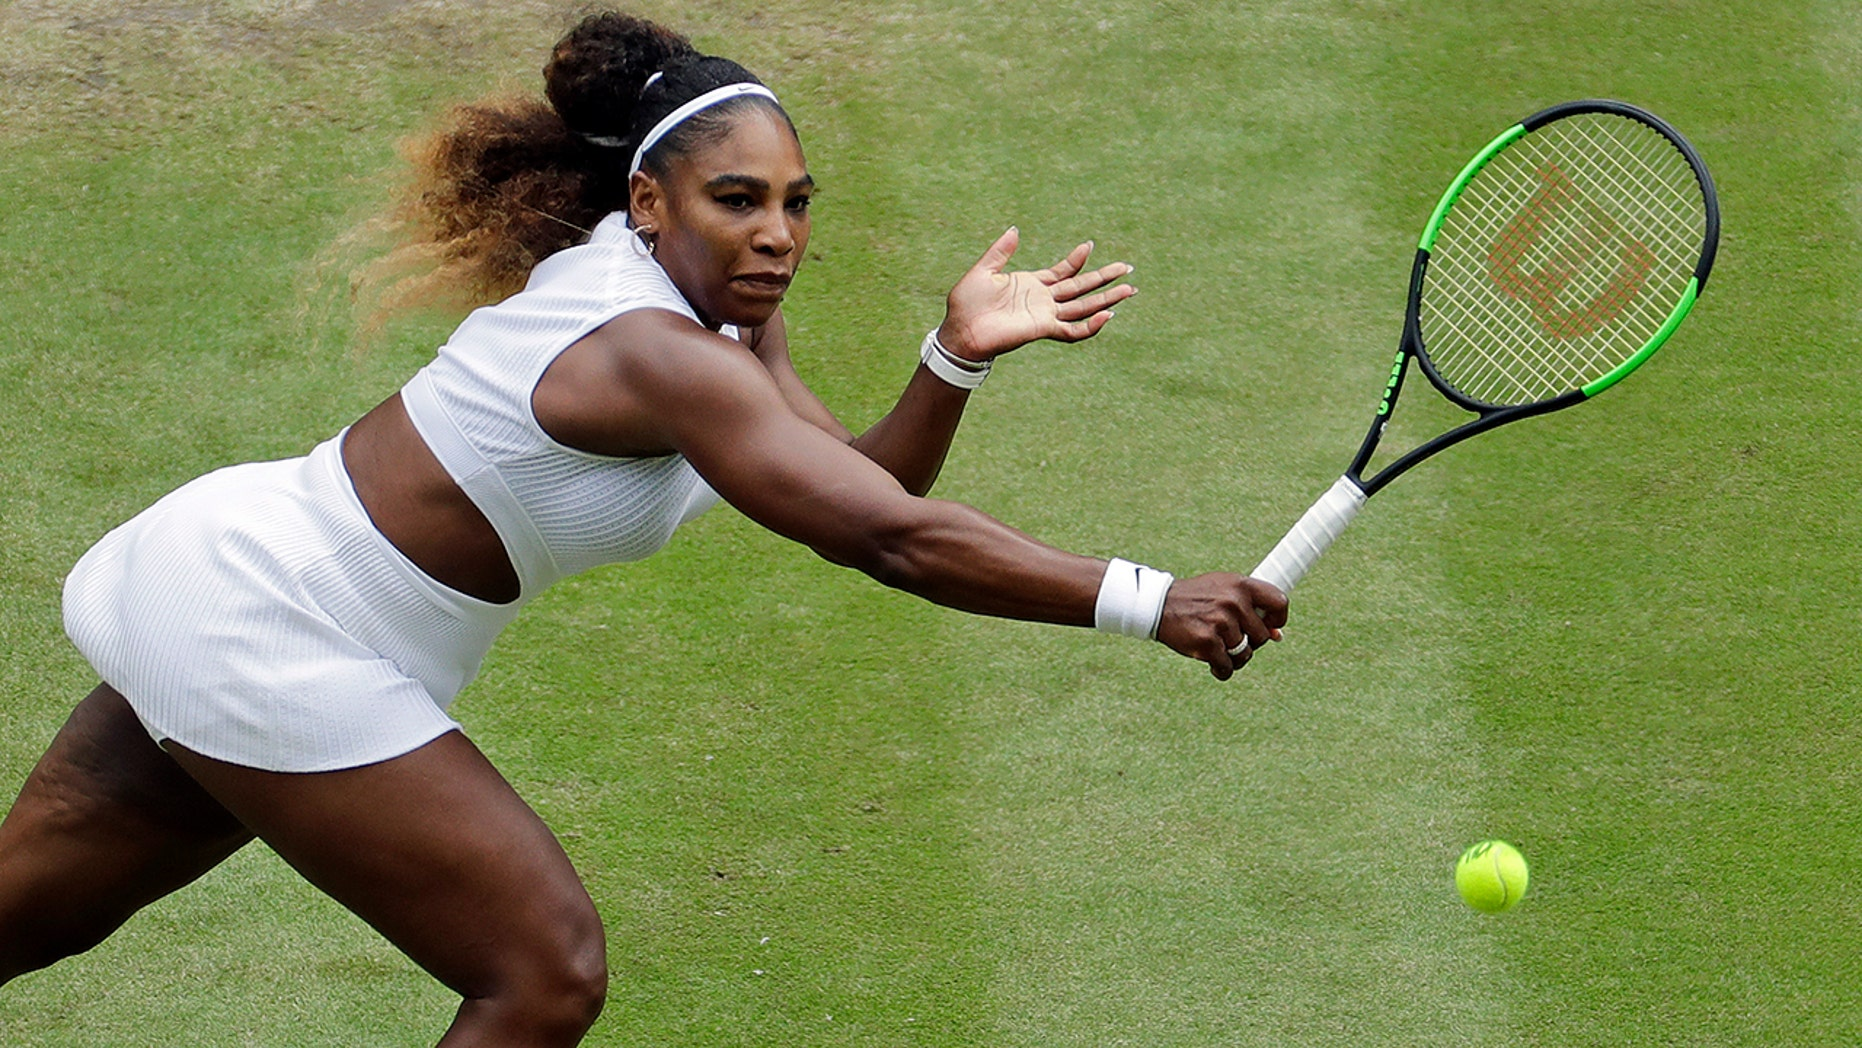 Serena to face Halep in Wimbledon final